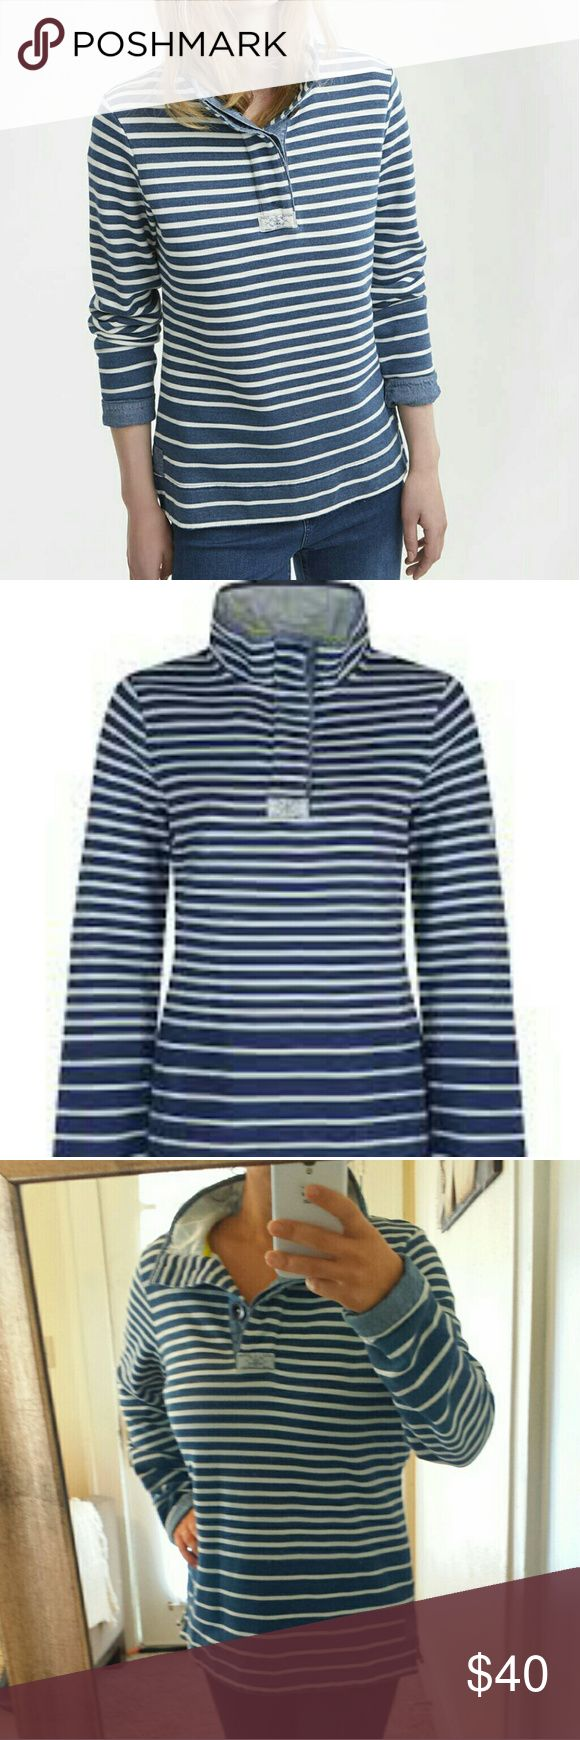 Joules Classic Blue Striped Pullover Sweatshirt Excellent condition,  heavier fabric No size tag,  but fits like US large  We've taken the Cowdray, our most-loved sweatshirt, and given it a salt wash finish. The result is quite simply your favourite sweatshirt, softly aged and lived in. Full of all the well considered details you've come to know and love (but still delight in discovering again and again). Joules Tops Sweatshirts & Hoodies